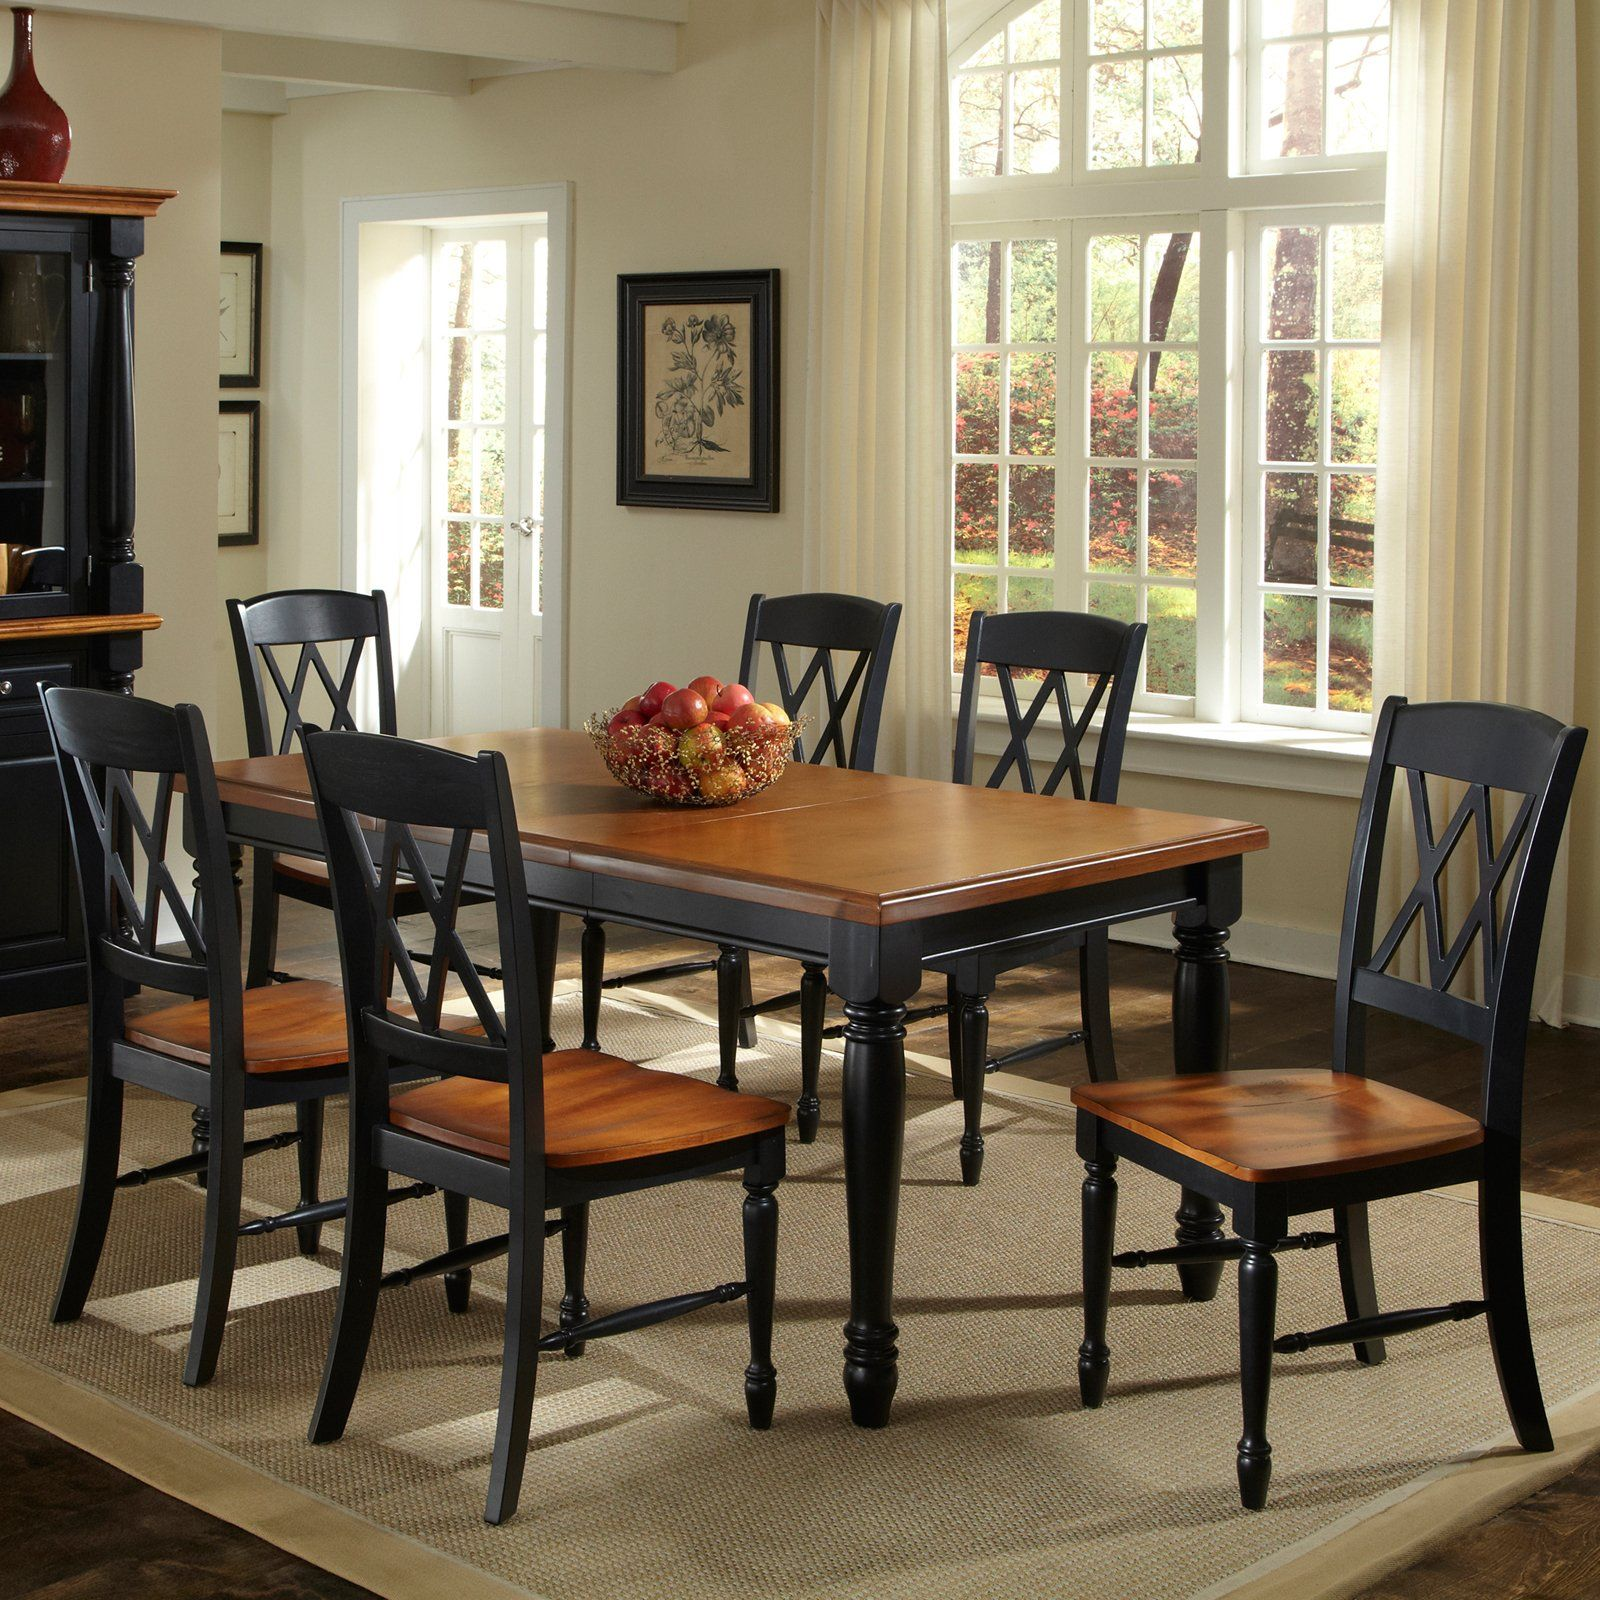 Attractive Home Styles Monarch 7 Piece Dining Table With 6 Double X Back Chairs    Black U0026 Oak $1149.99